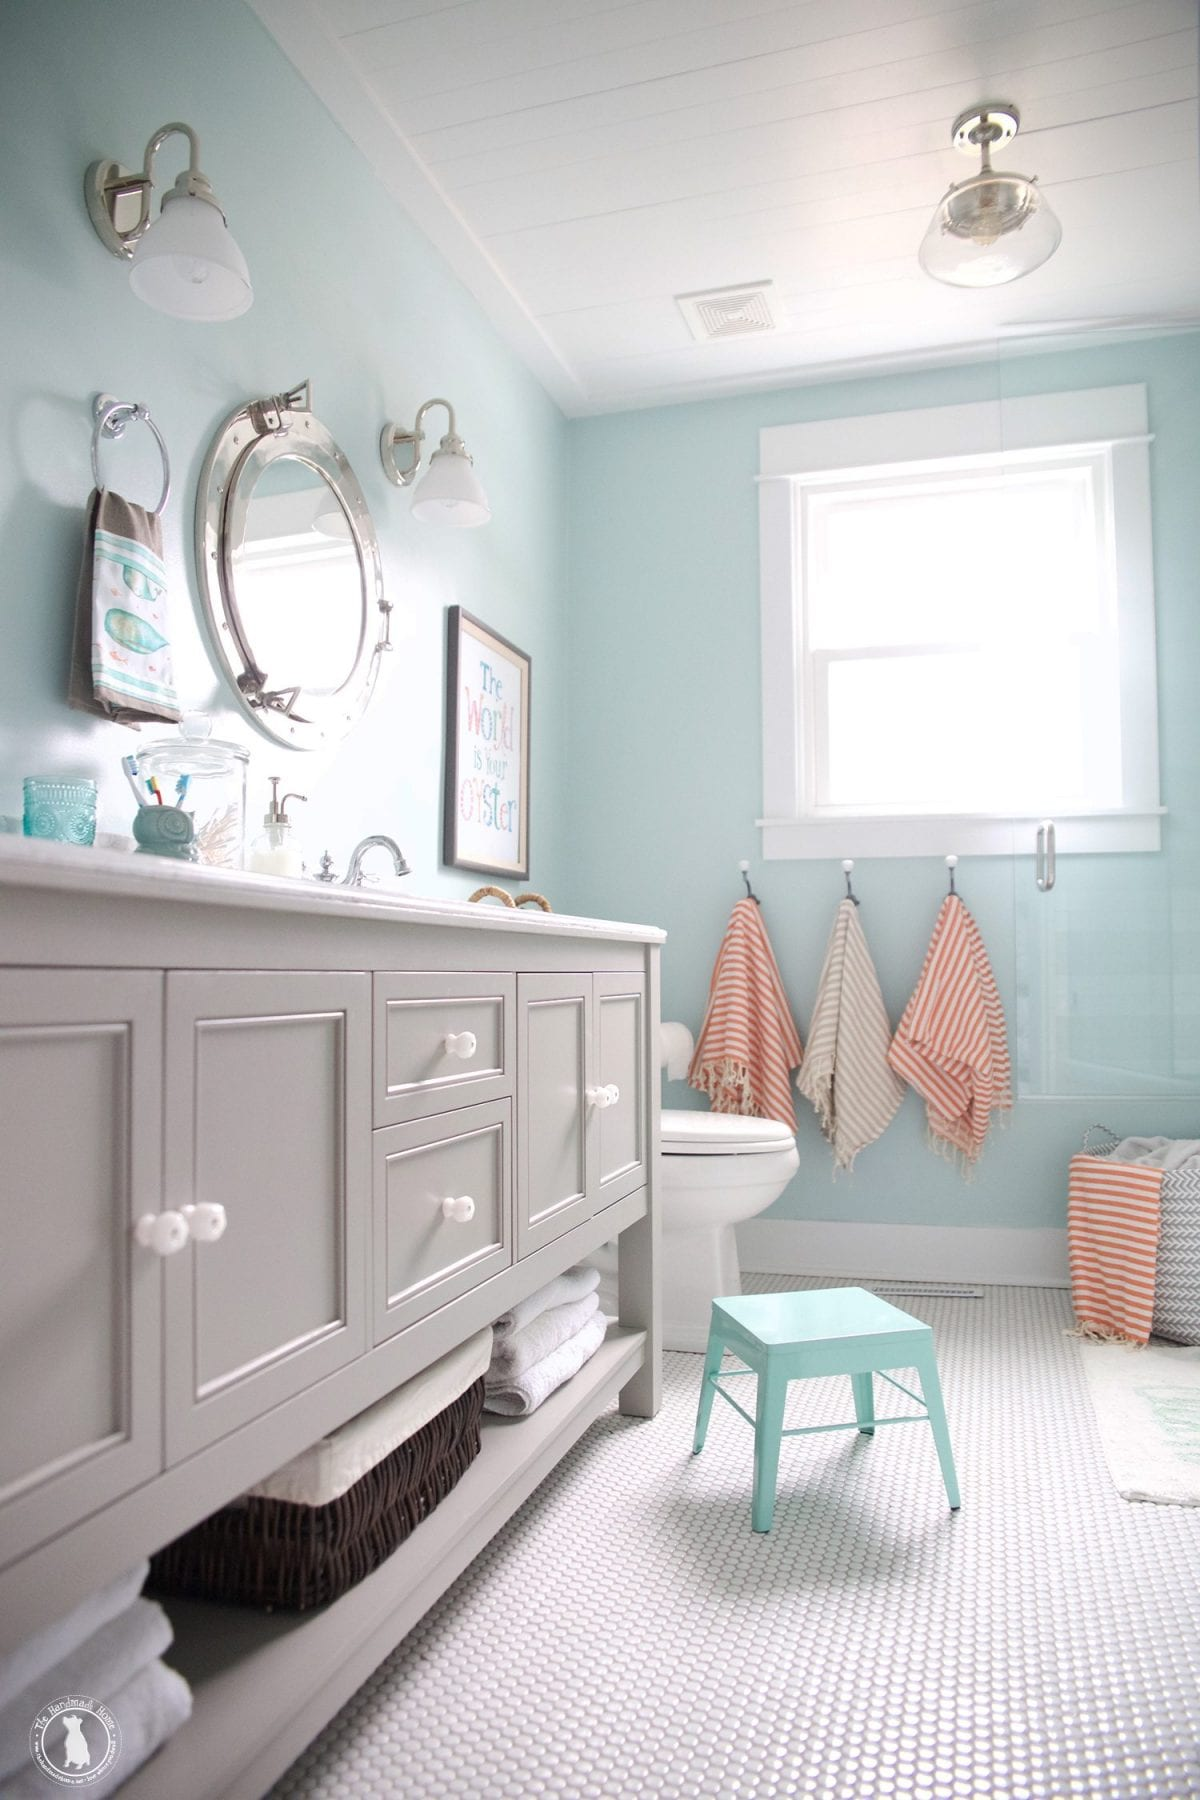 how to shiplap your ceilings - bathroom